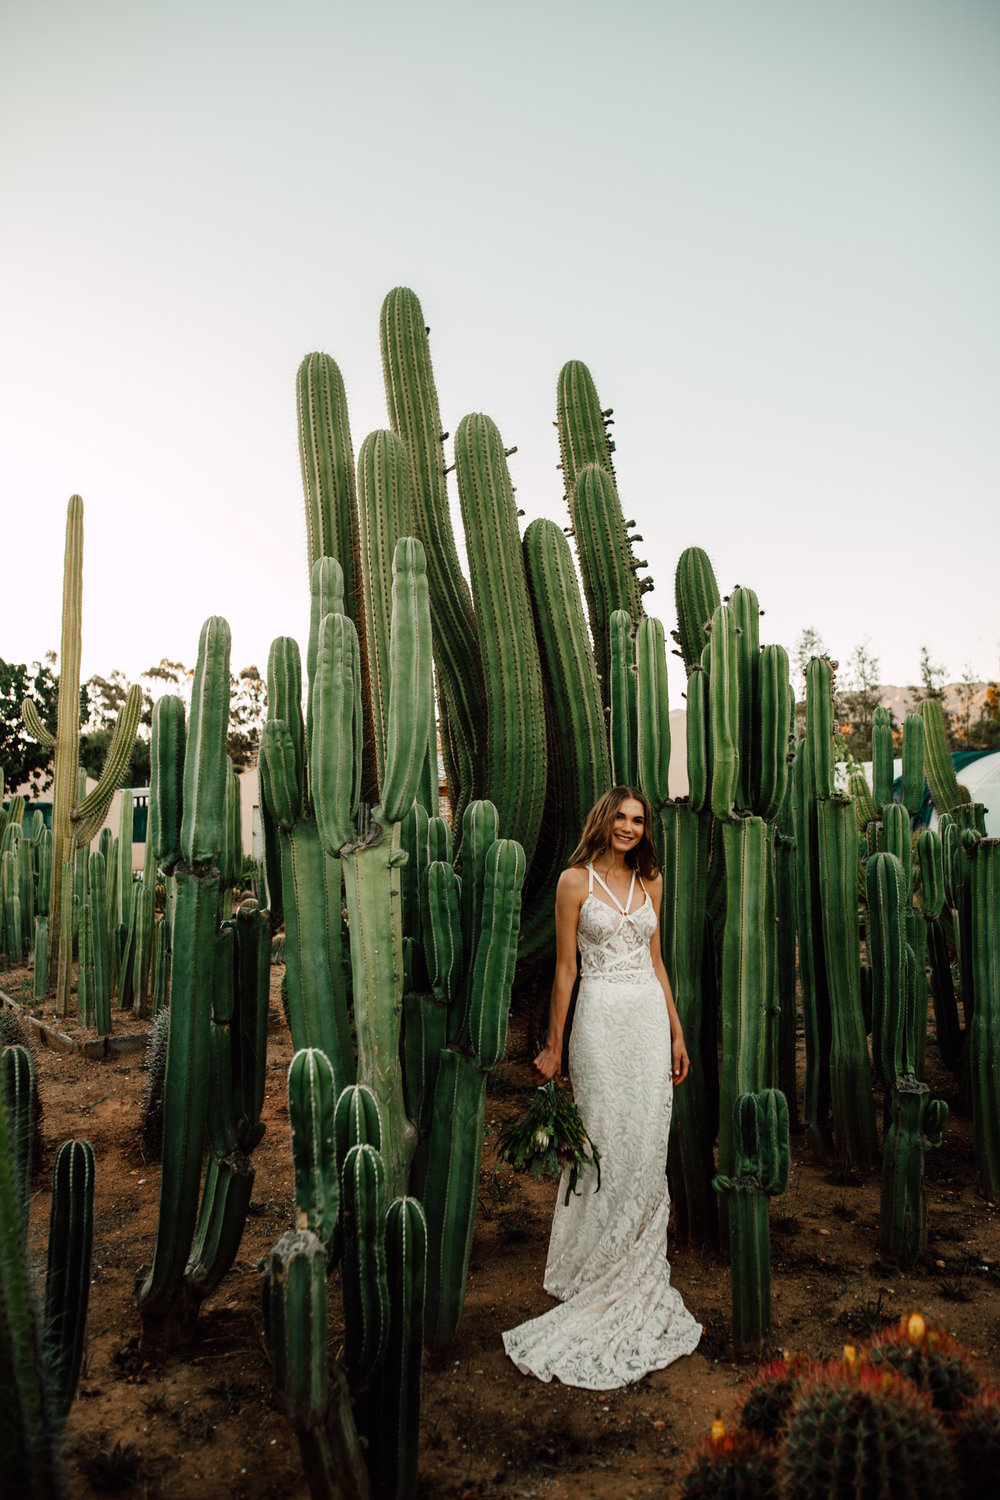 Cape-Town-Pia-Anna-Christian-Wedding-Photography-South-Africa-Bride-Cactus-14.jpg